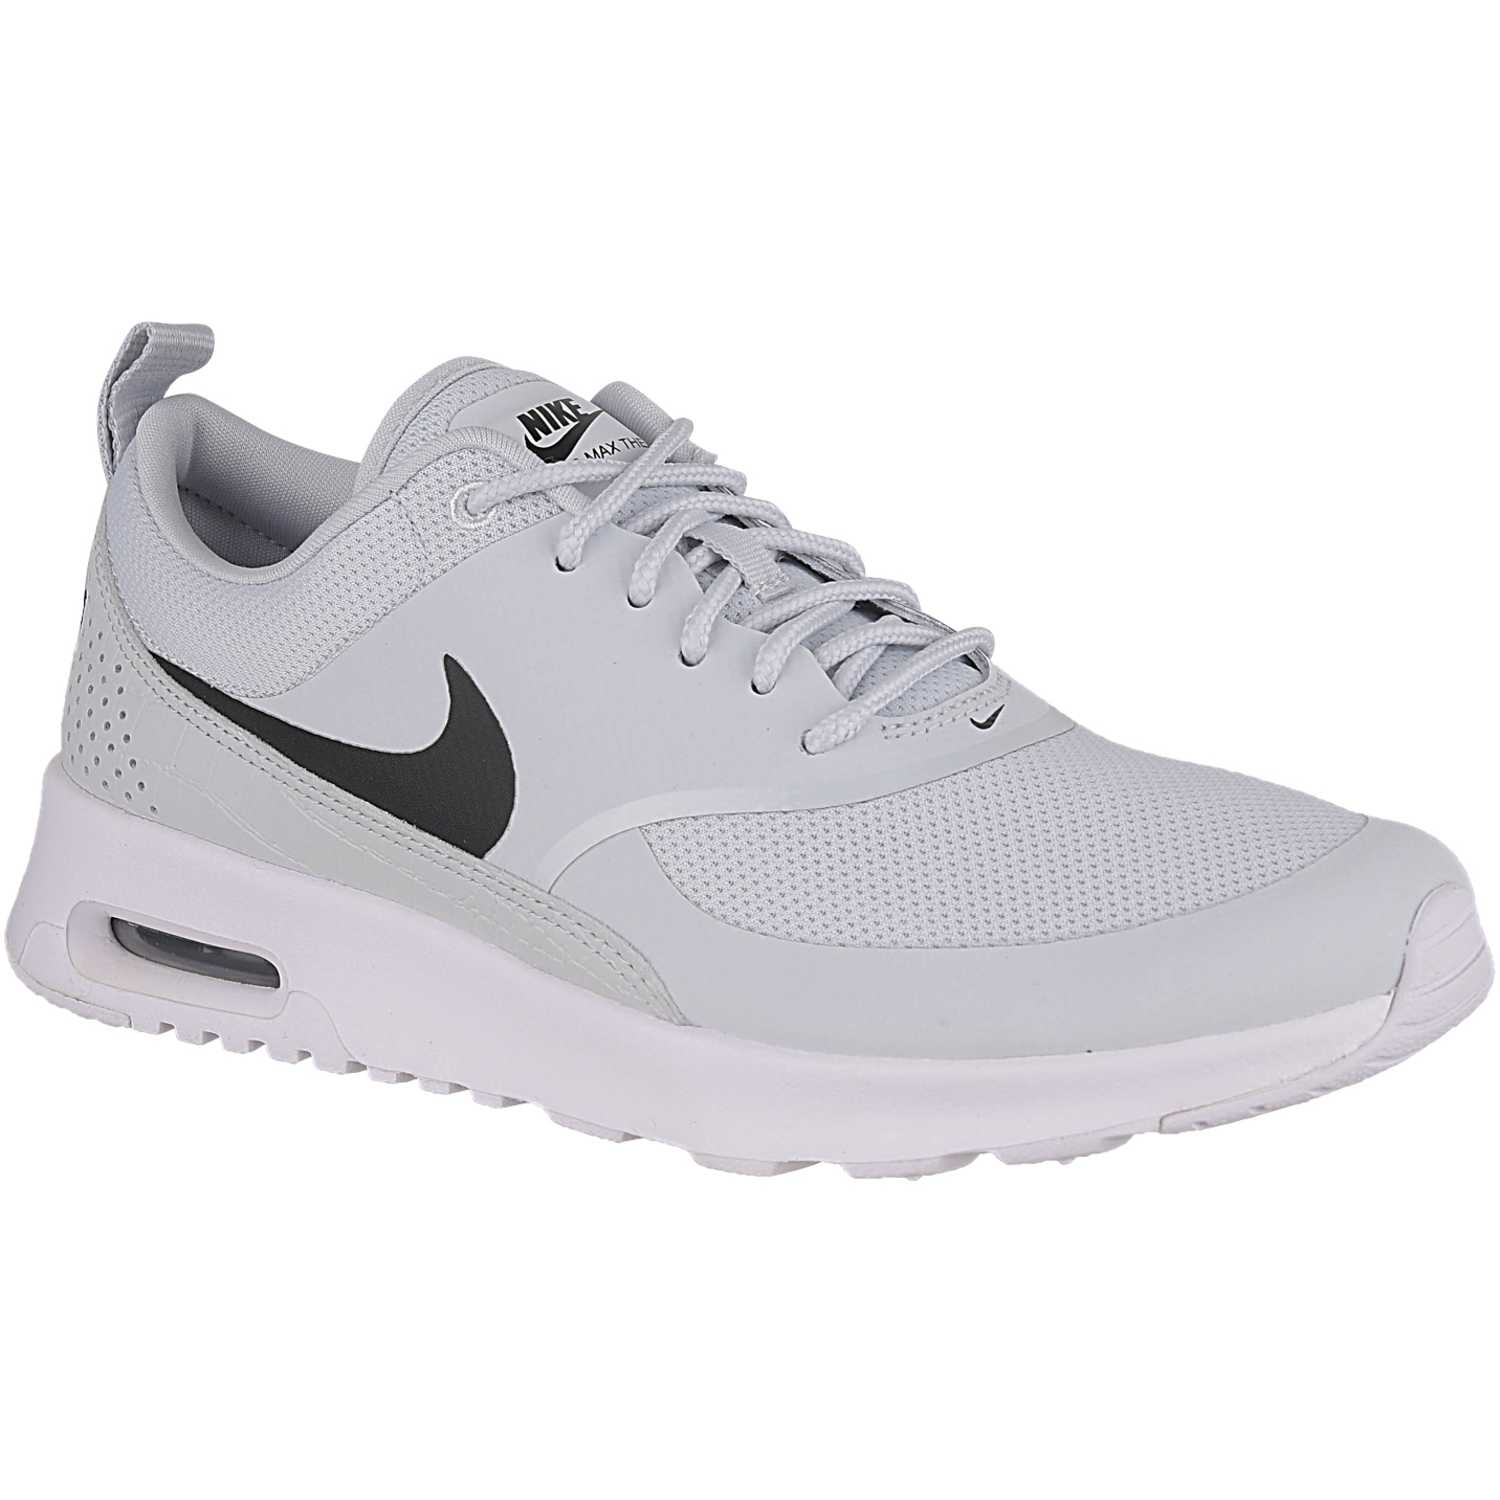 Nike w nike air max thea Blanco/plomo Walking